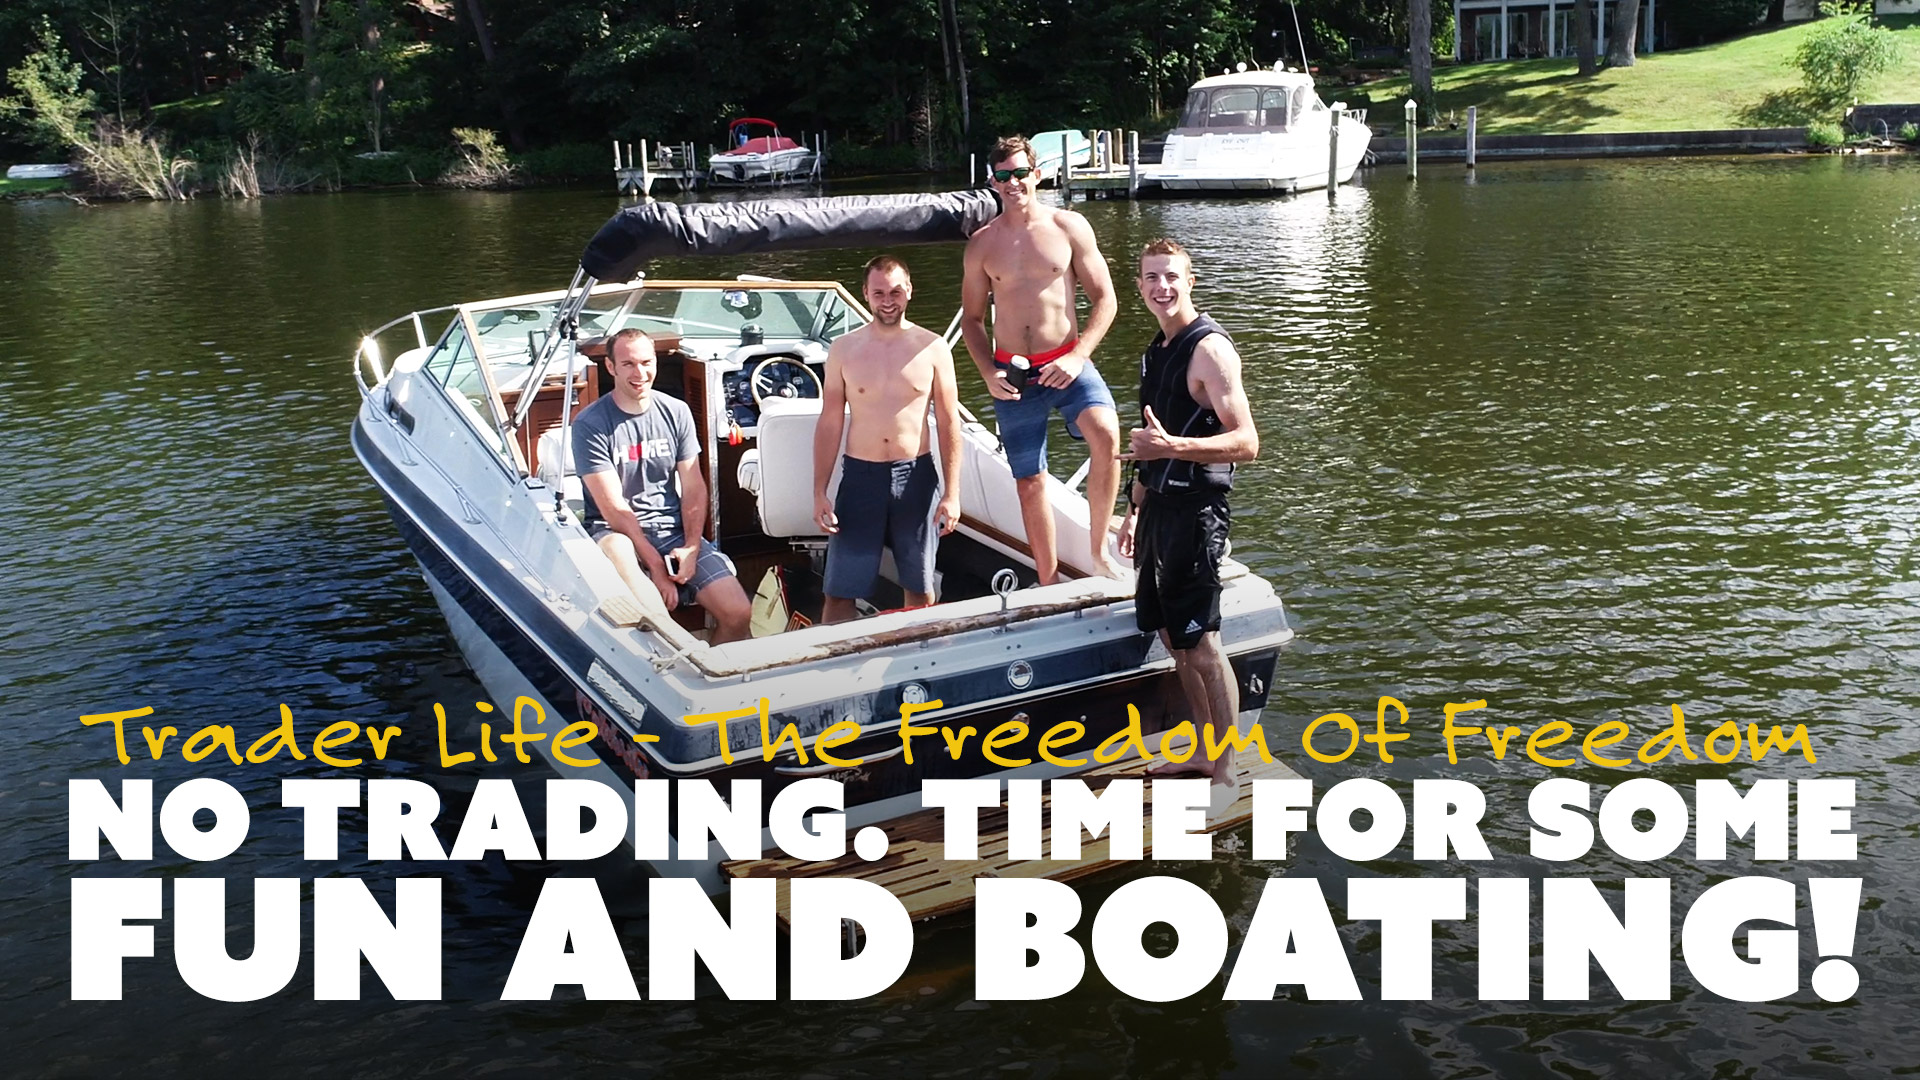 No Trading. Time for Some Fun and Boating!